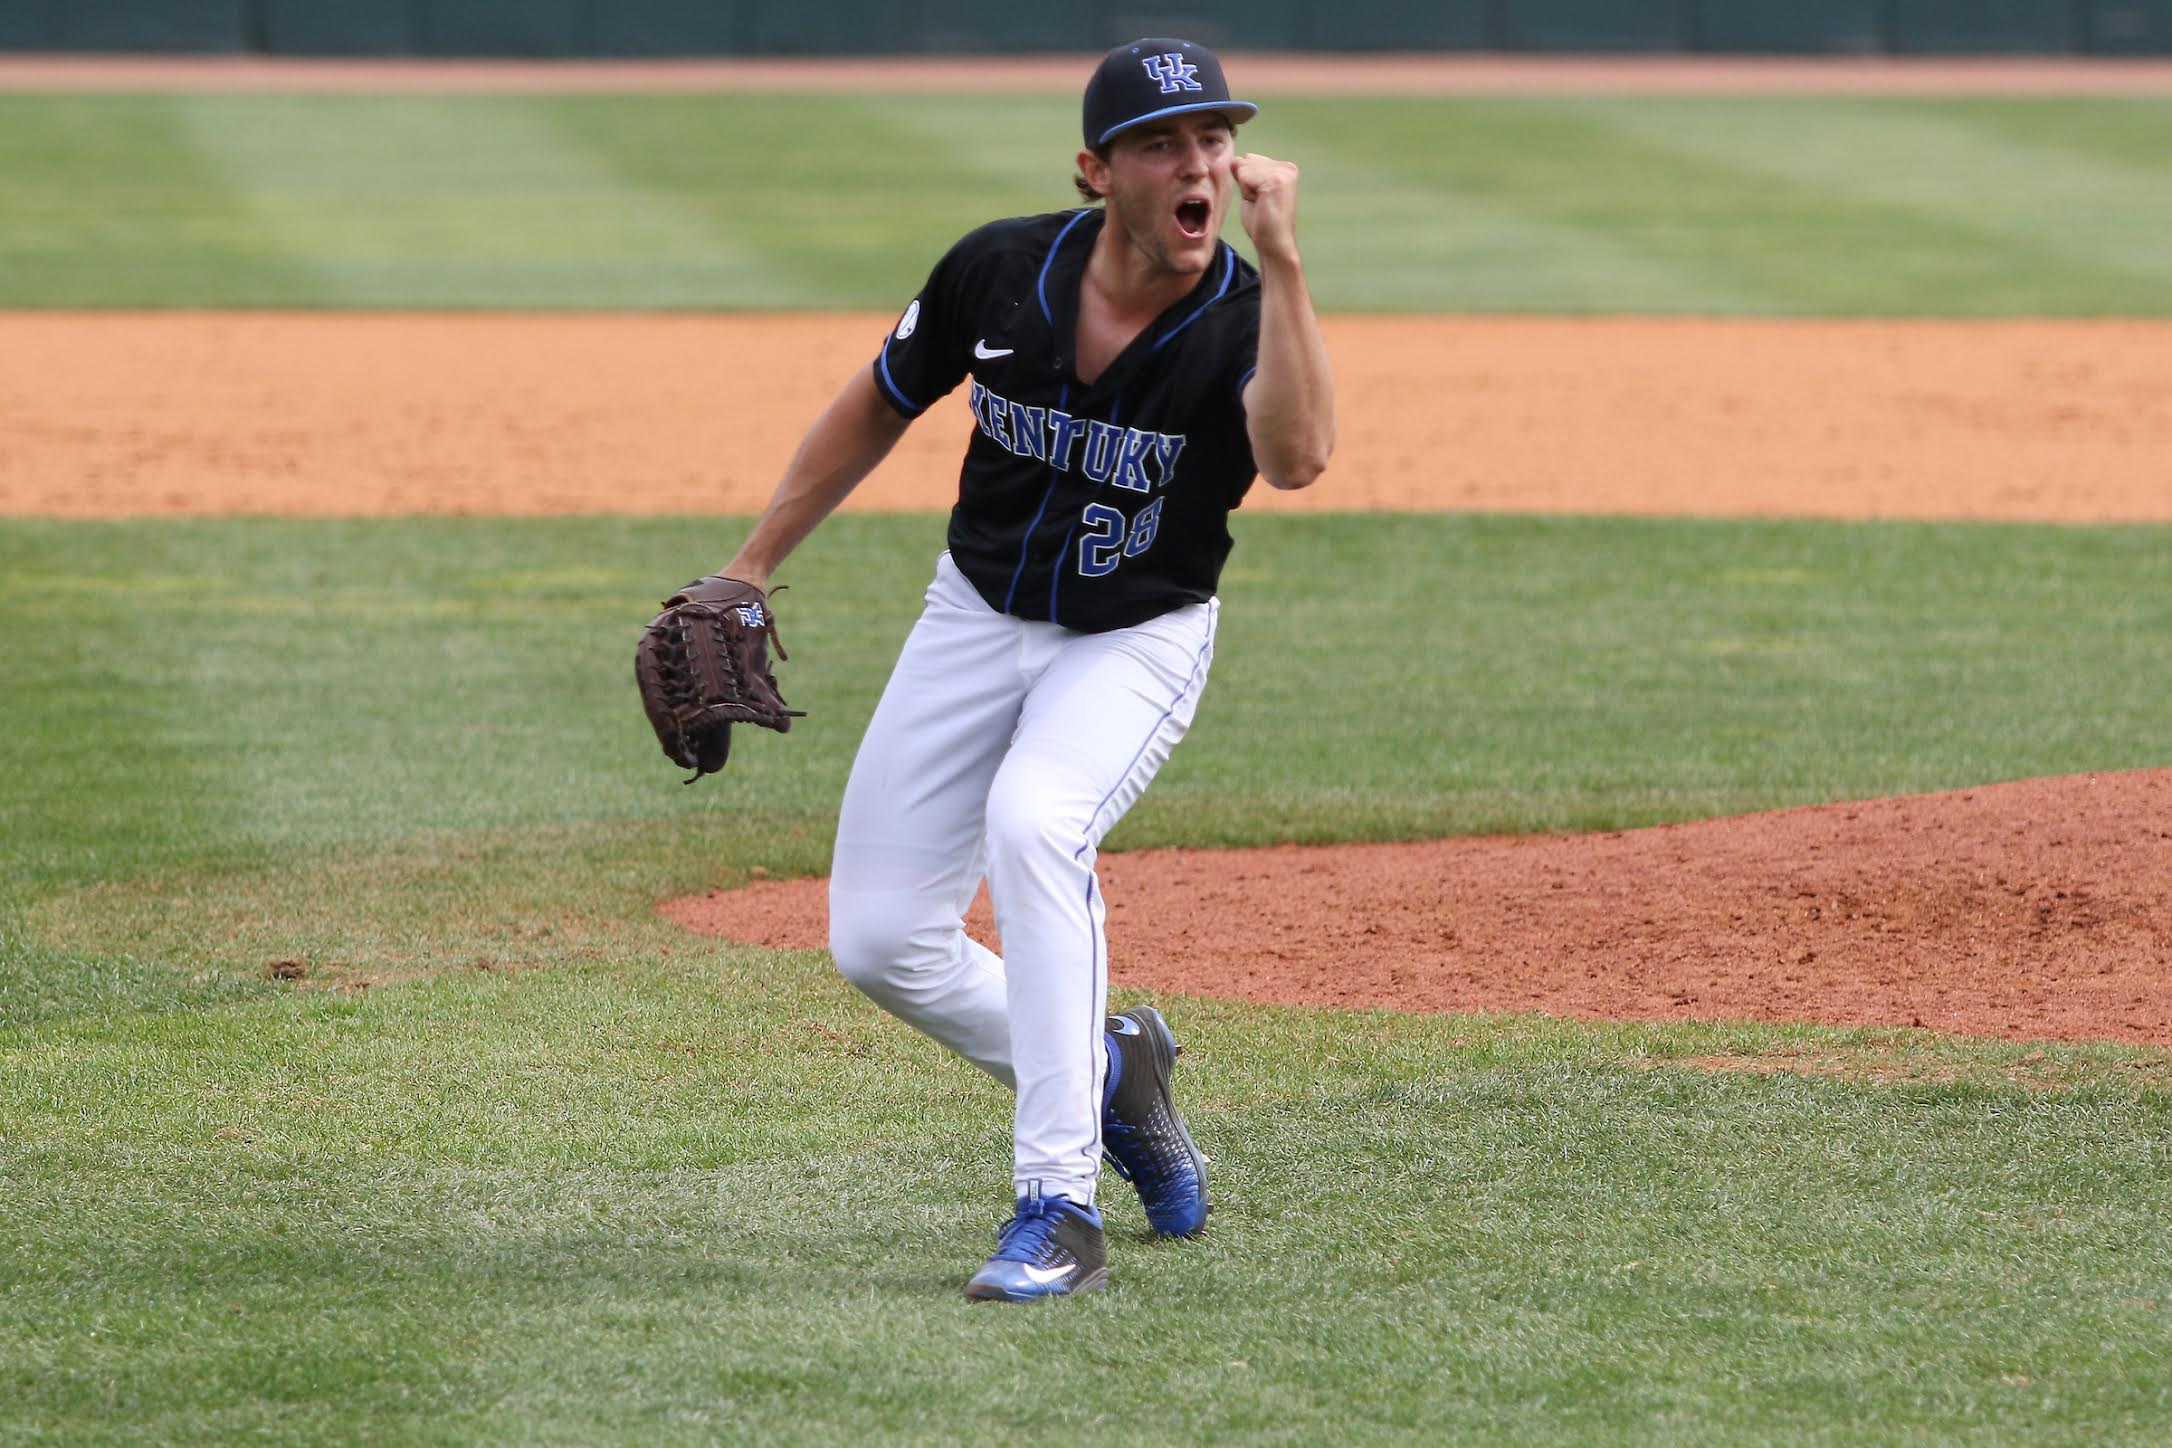 Logan Salow.  No. 19 Kentucky takes the series against Ole Miss with a 4-2 win on Saturday, March 25th, 2017 at Lexington's Cliff Hagan Stadium.  Photo by Quinn Foster   UK Athletics